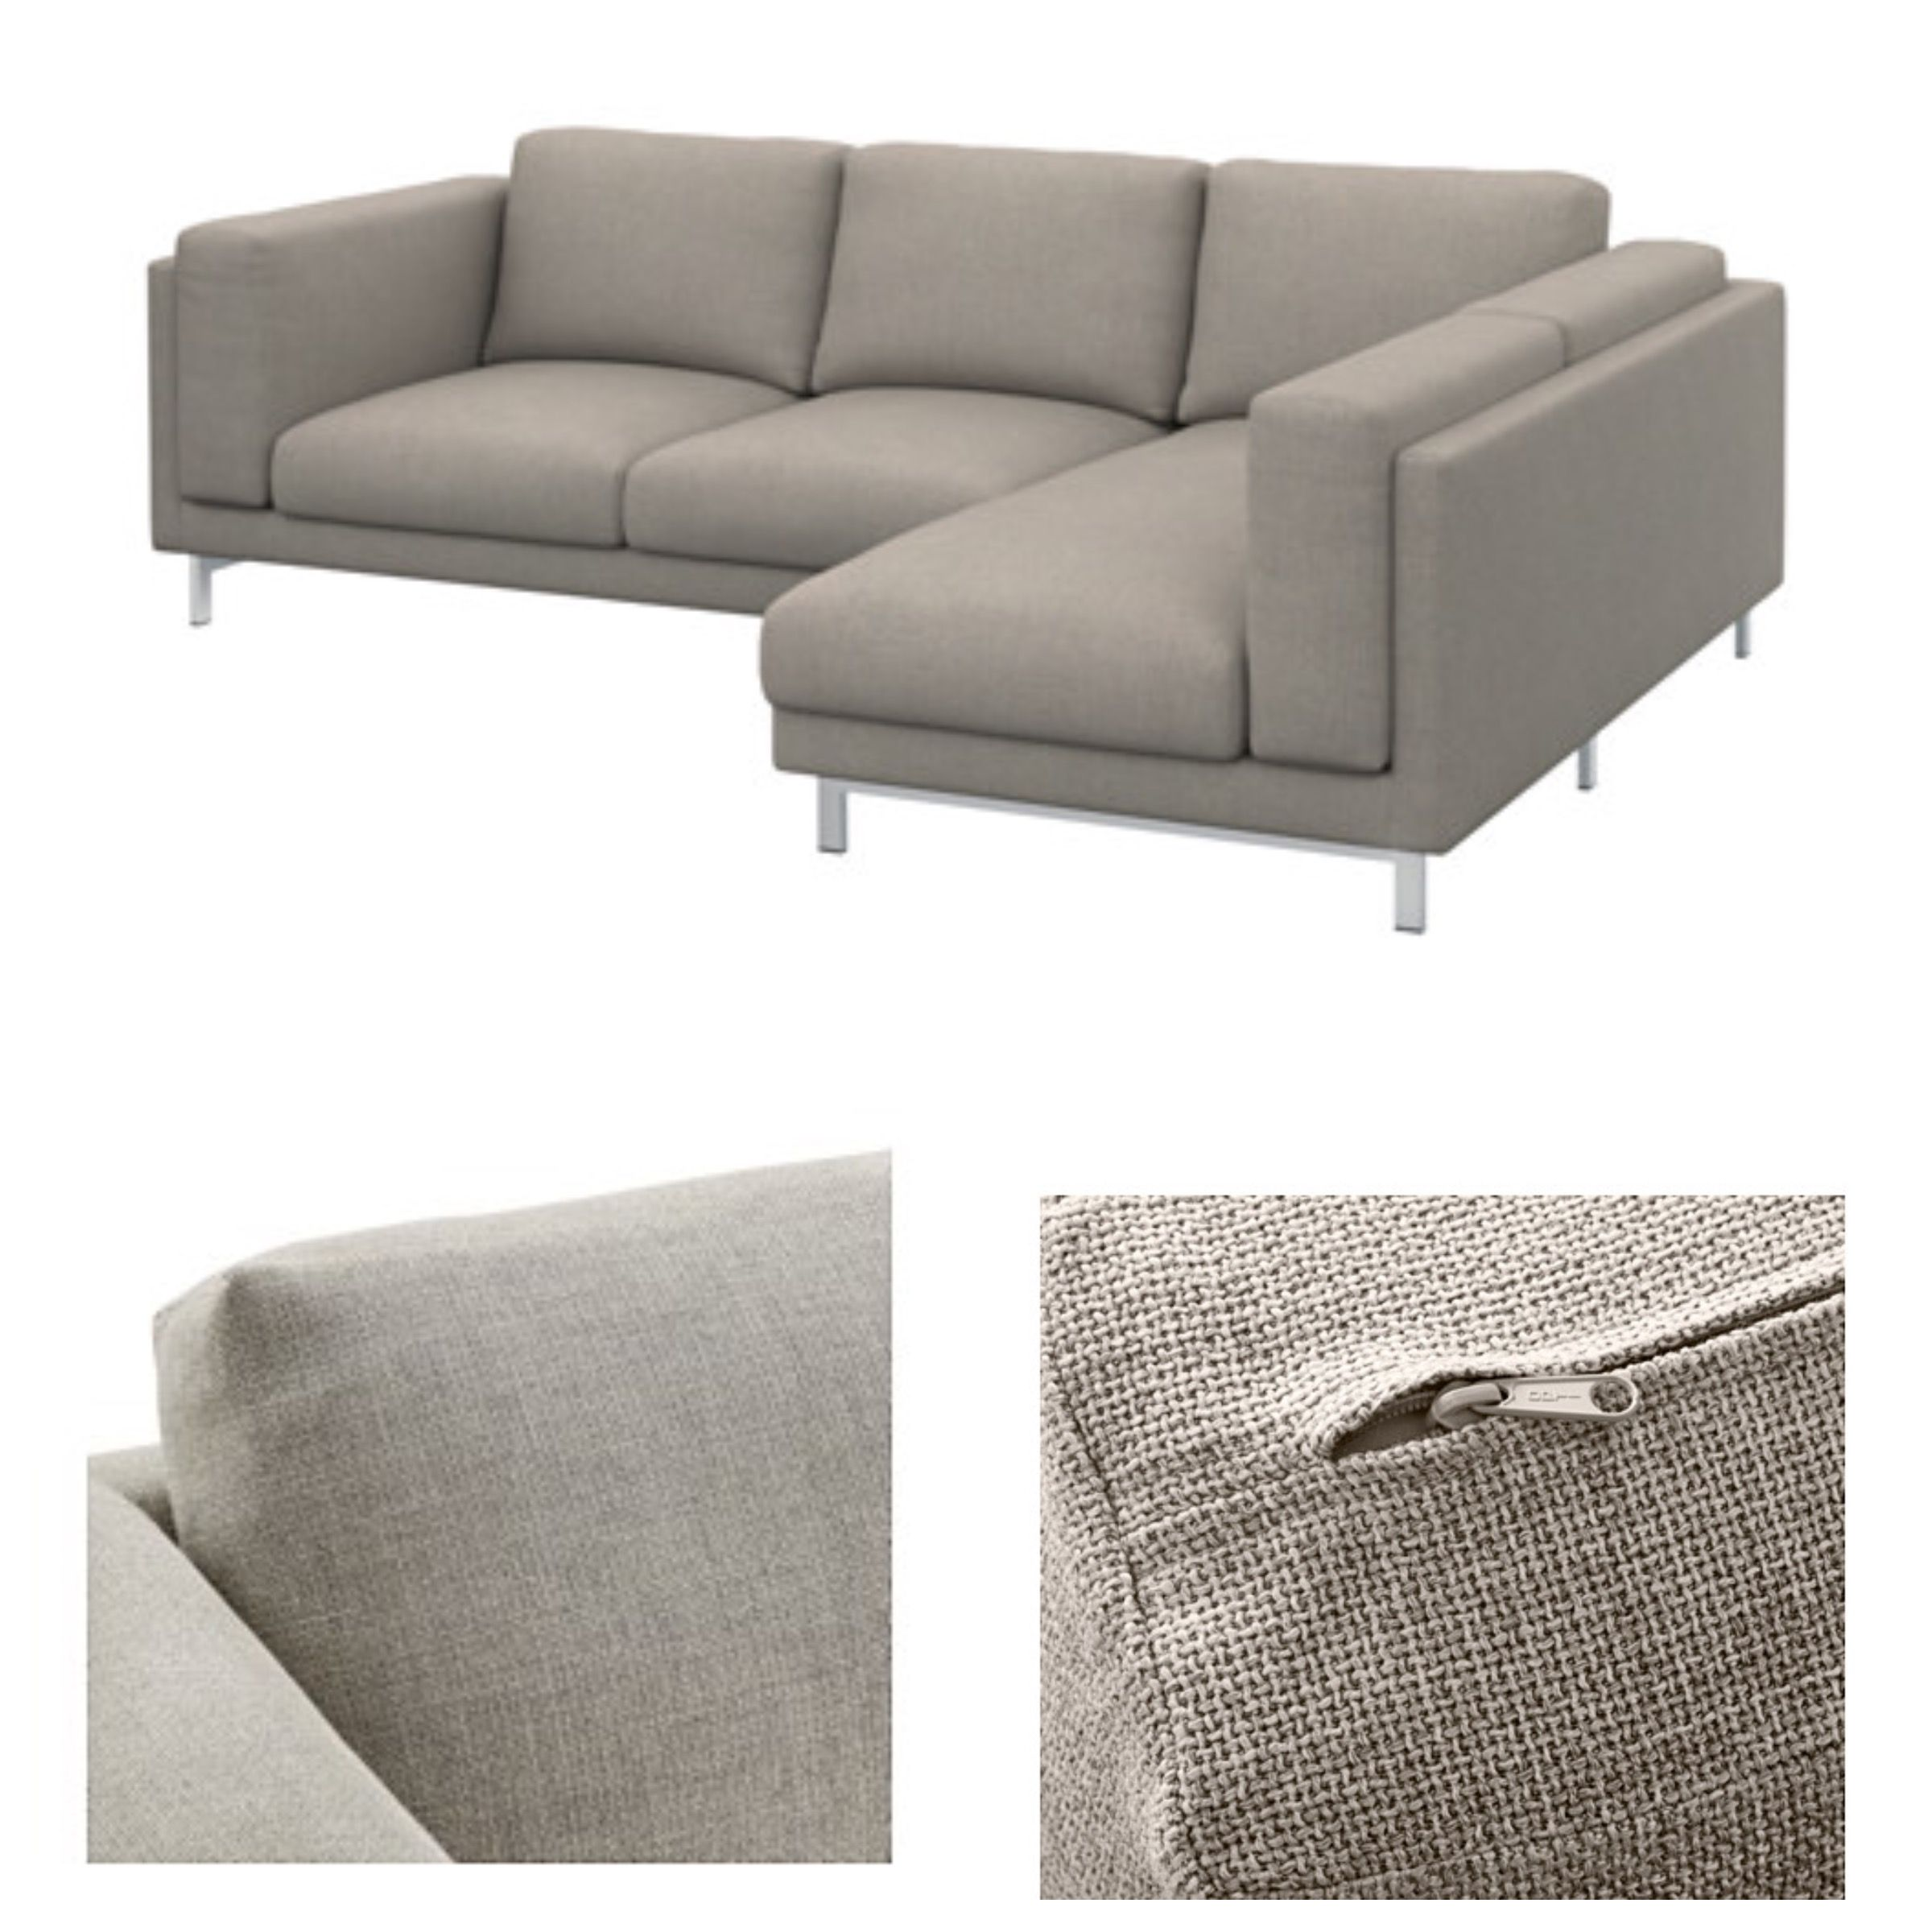 Ikea Nockeby Two Seat Sofa Ikea Nockeby Two Seat Sofa W Chaise Longue Right Tenö